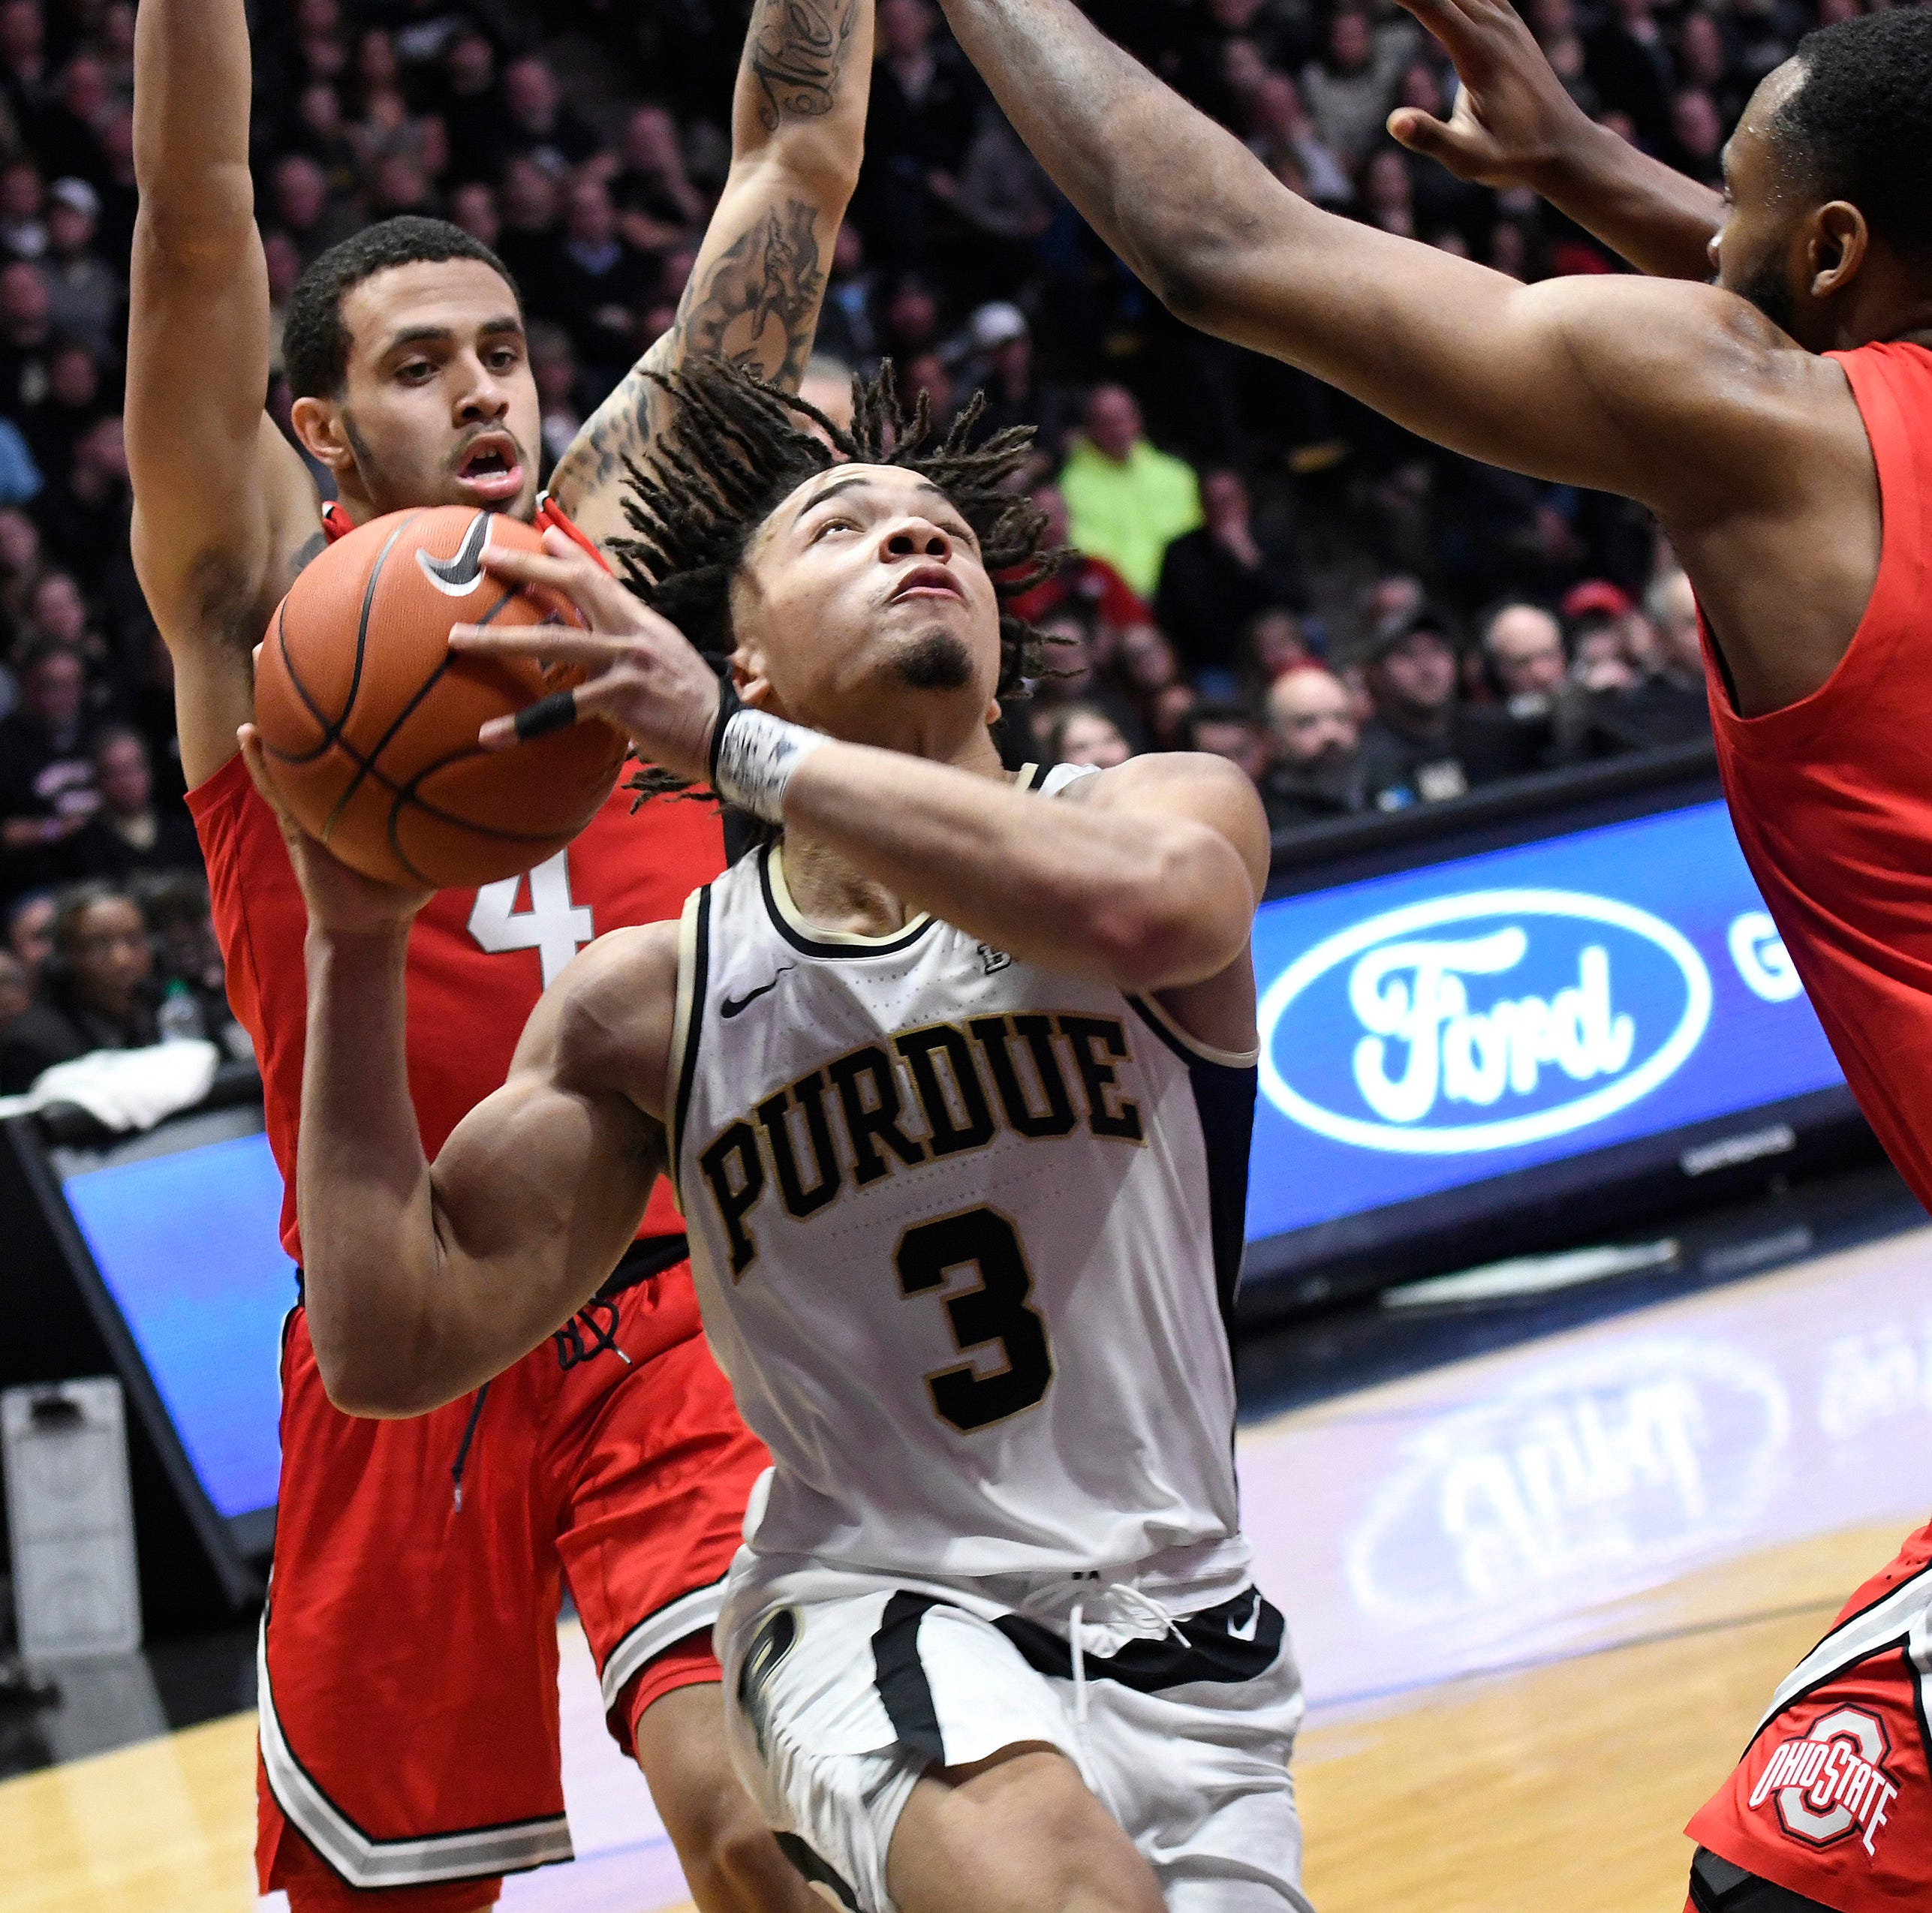 Scouting Purdue men's basketball vs. Old Dominion in NCAA Tournament